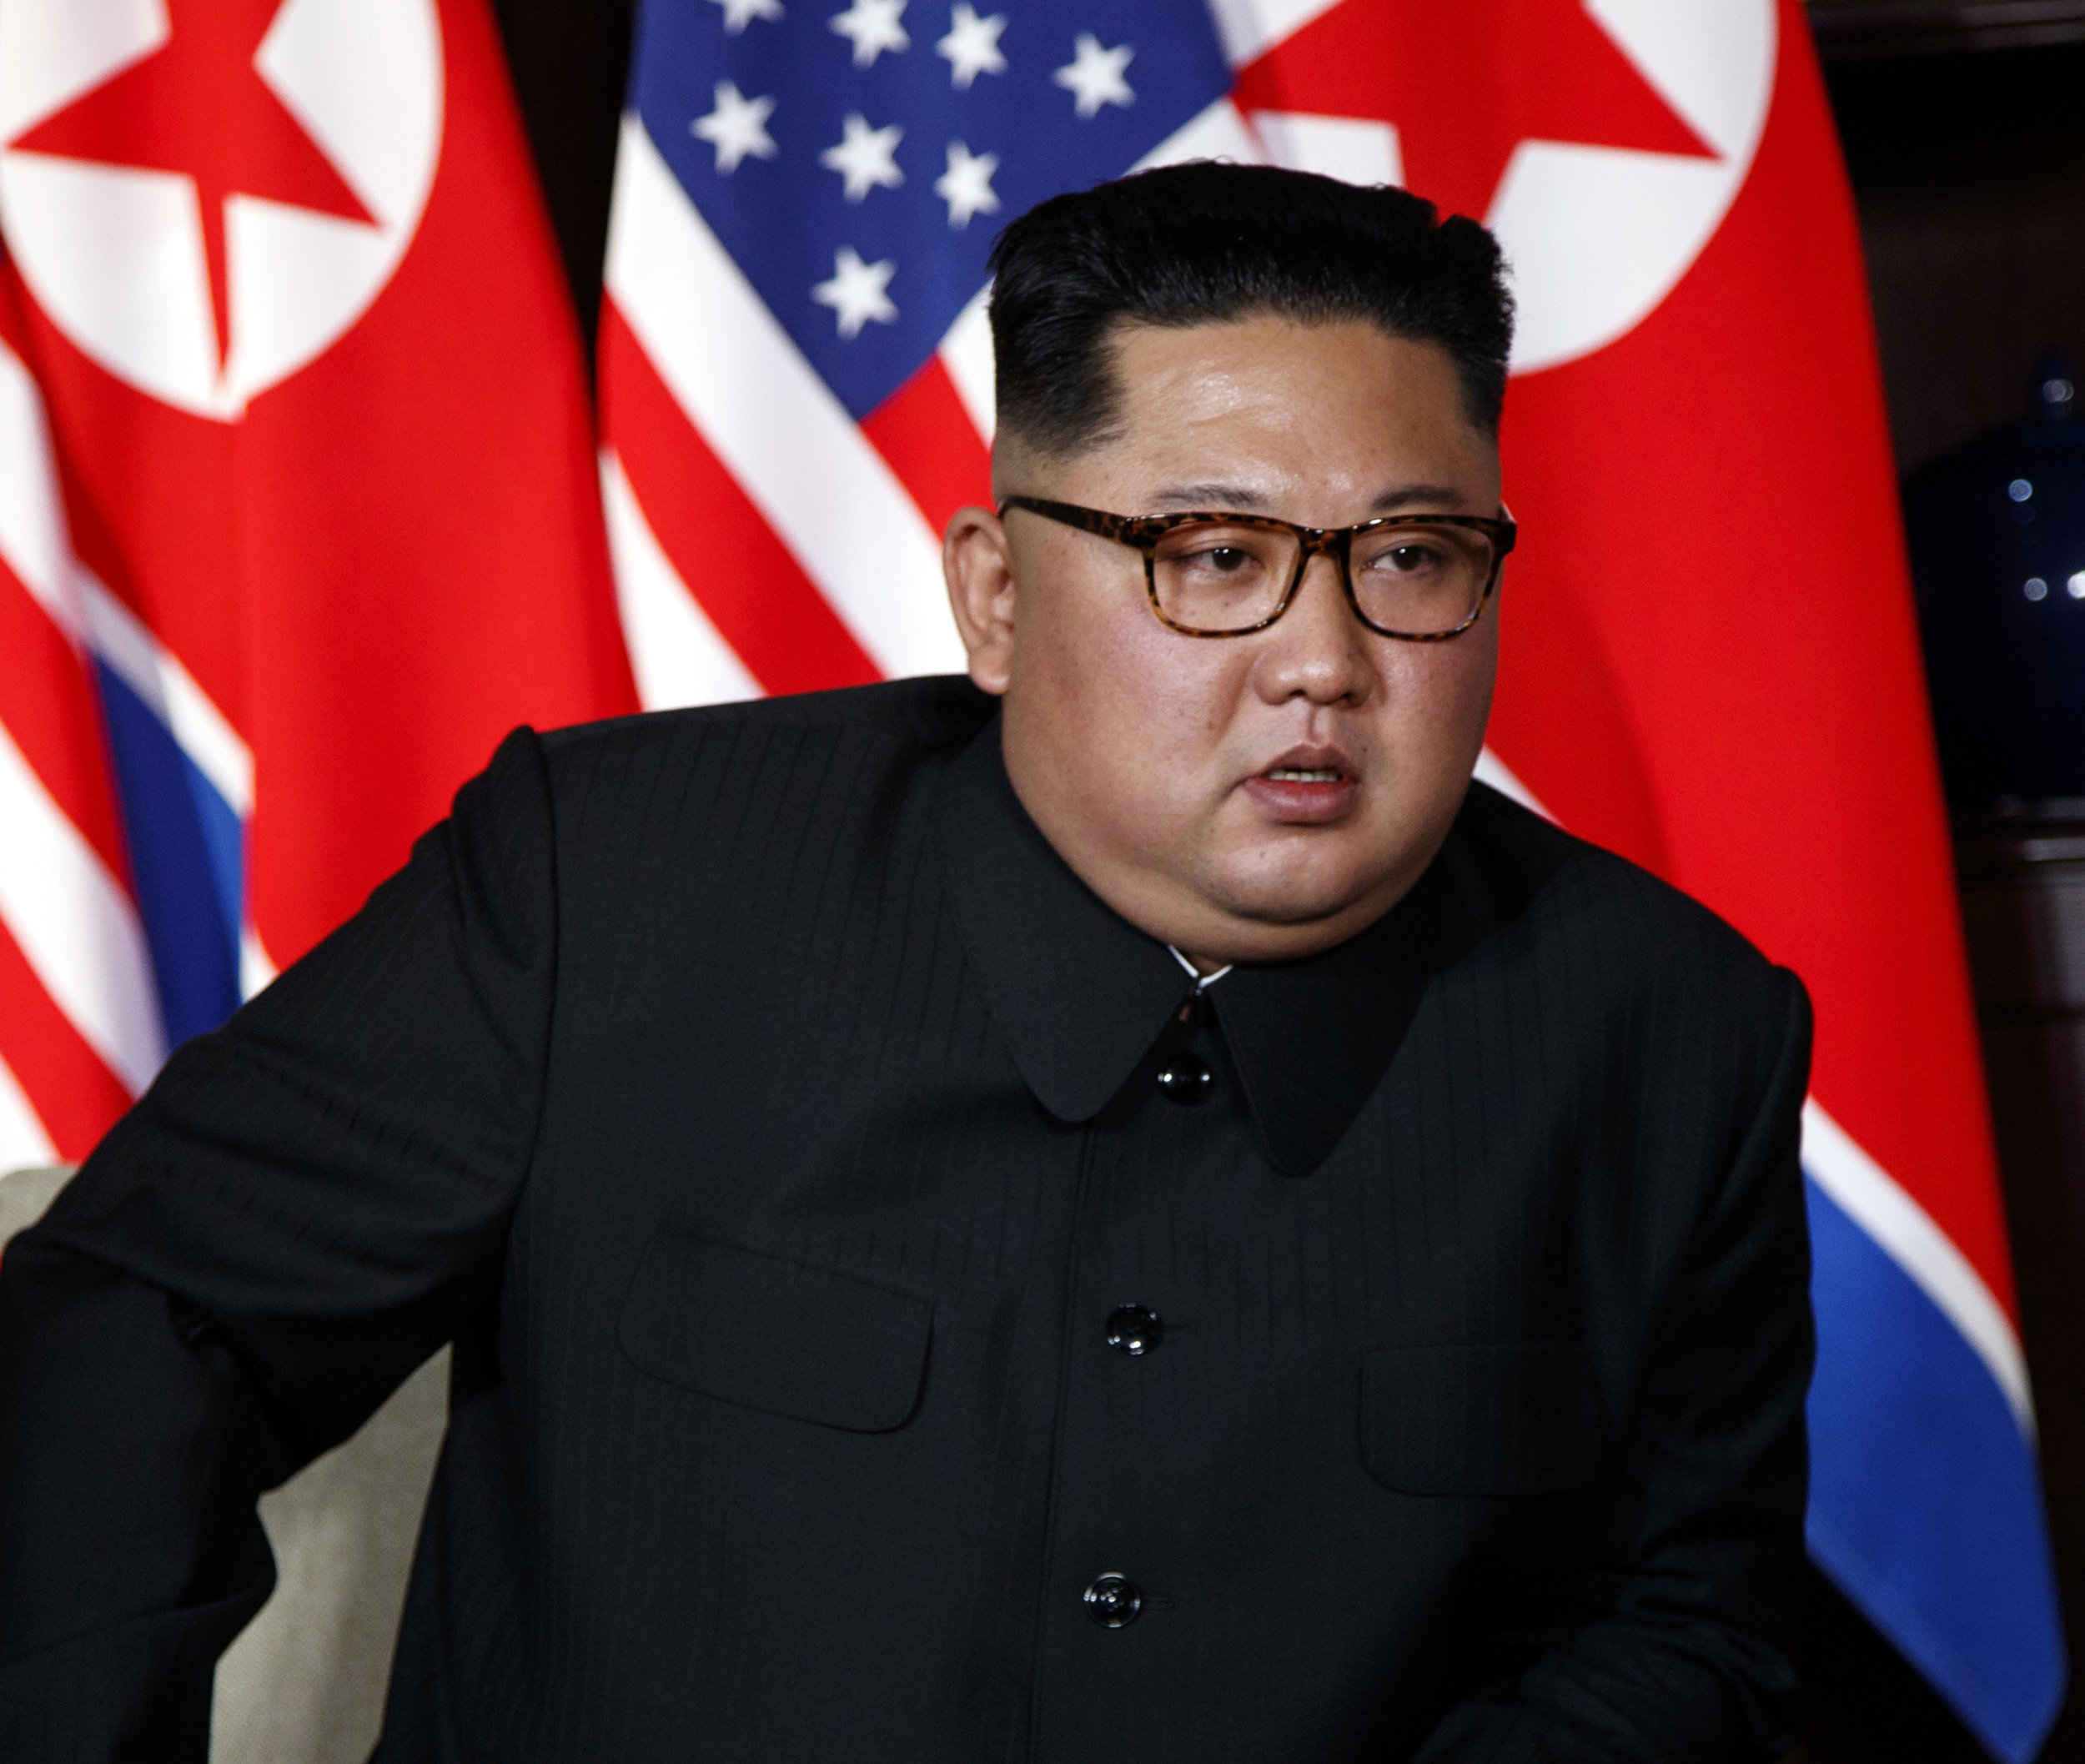 FILE - In this June 12, 2018, file photo, North Korean leader Kim Jong Un listens to U.S. President Donald Trump during a meeting on Sentosa Island in Singapore. Chinese state media say North Korean leader Kim will make a two-day state visit starting Tuesday, June 19. Kim's trip follows his groundbreaking summit with President Donald Trump in Singapore last week that resulted in a surprise announcement of a U.S. suspension of military drills with its South Korean ally.(AP Photo/Evan Vucci, File)